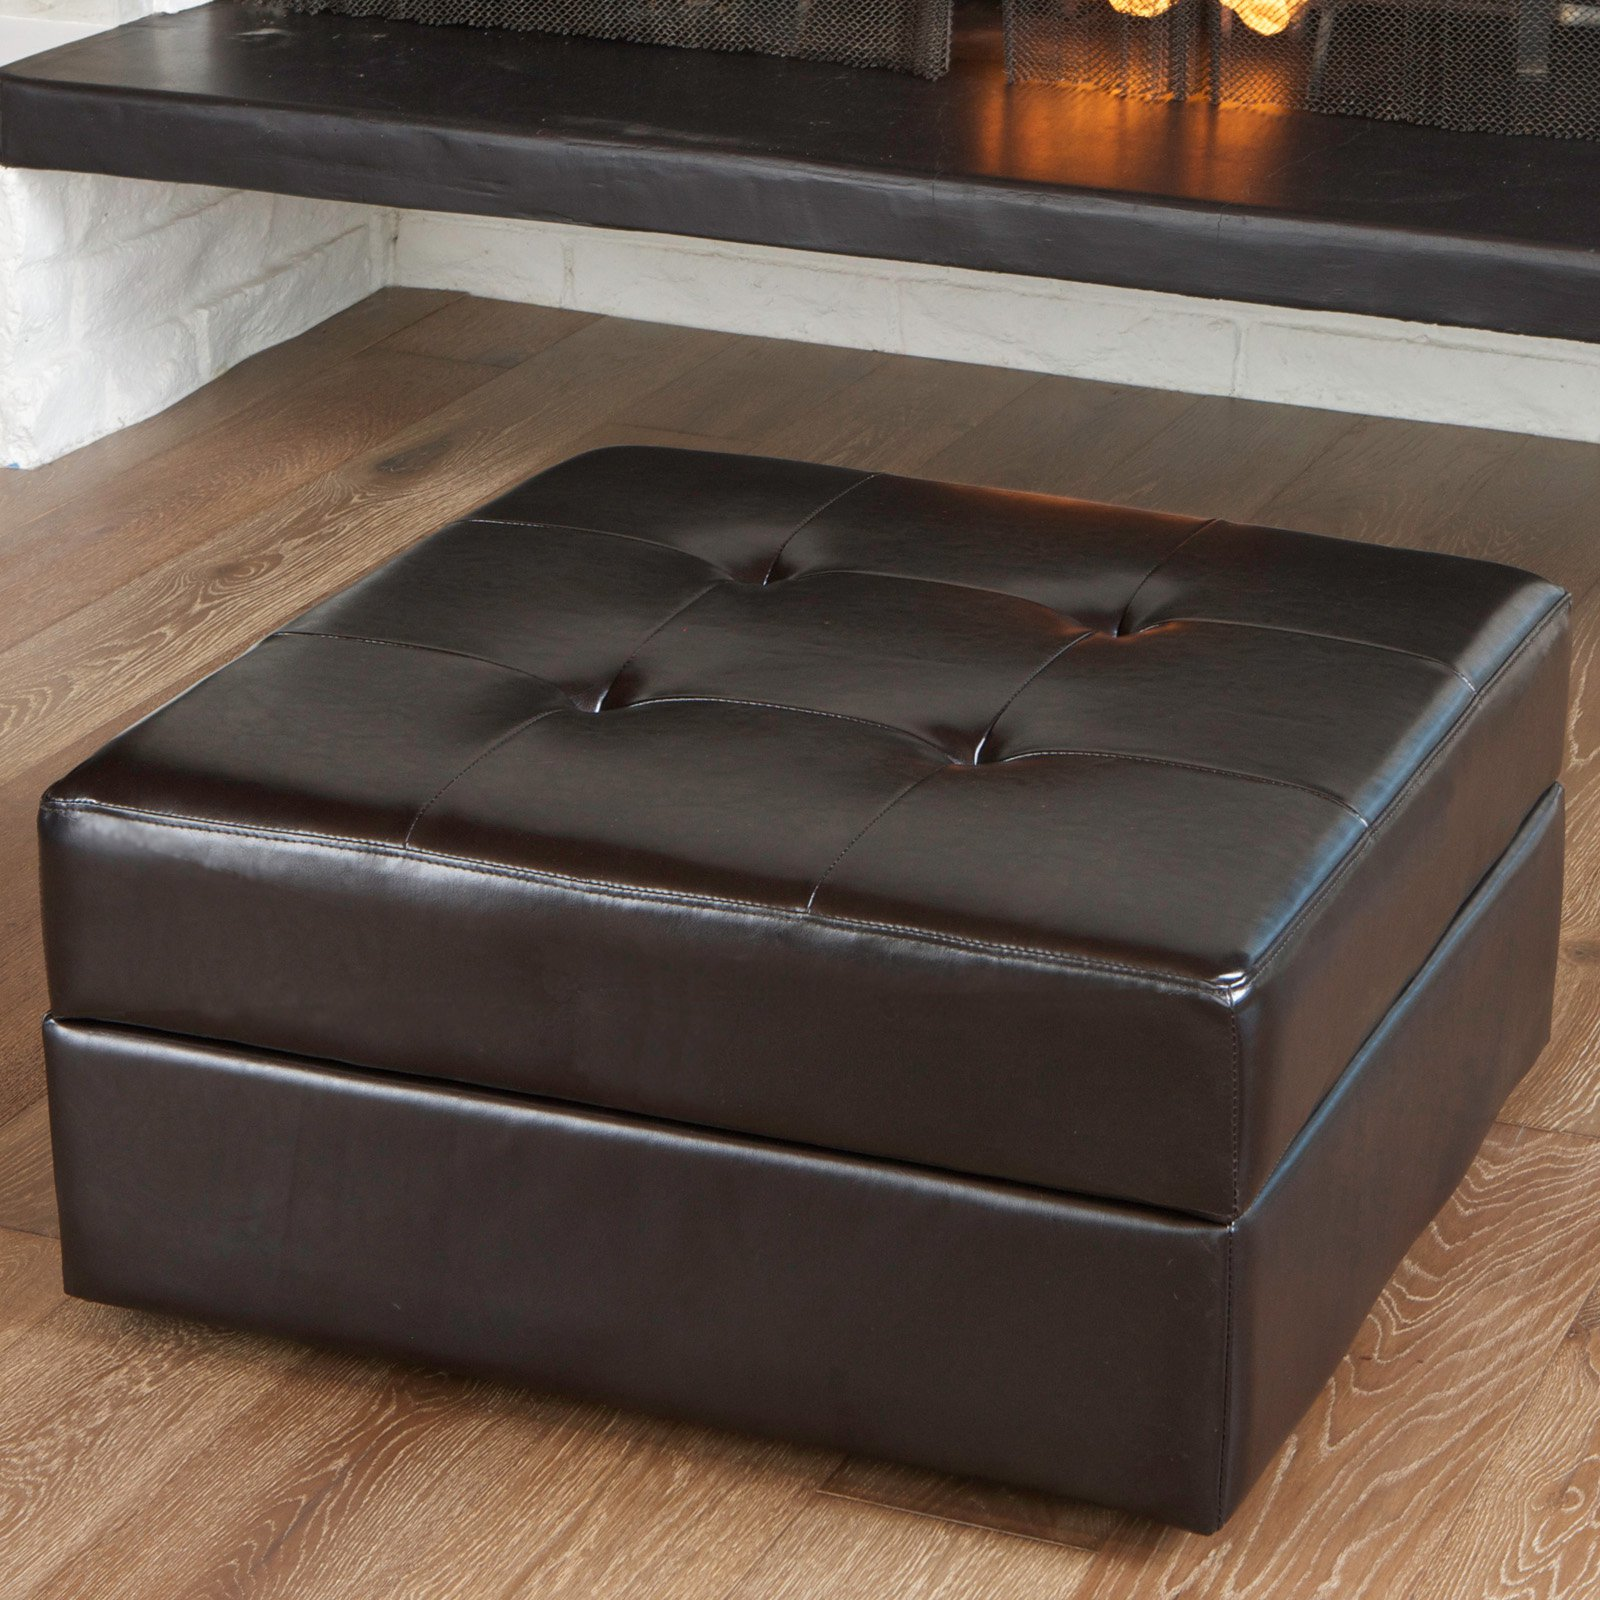 Chatsworth Leather Storage Ottoman Brown by Best Selling Home Decor Furniture LLC